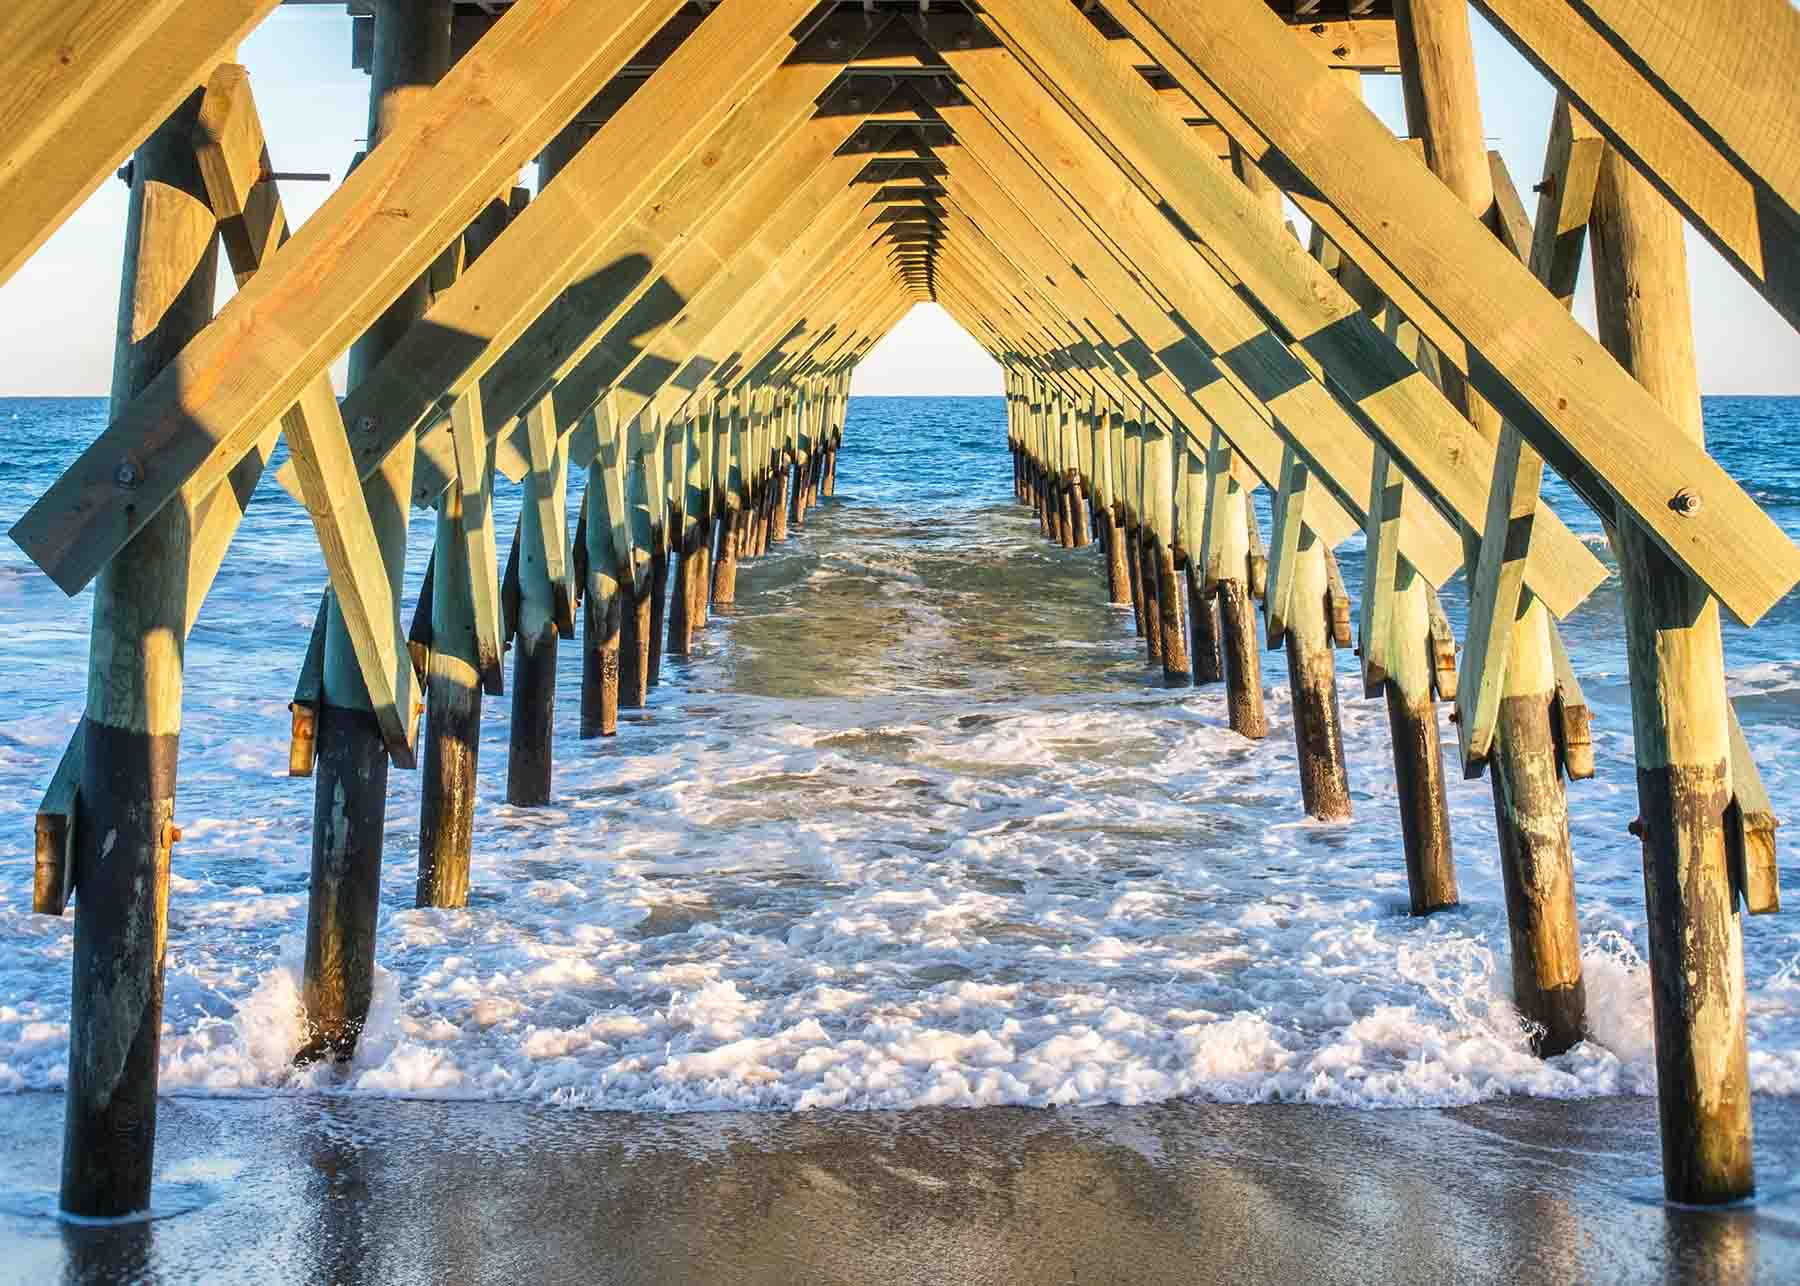 Waters lapping the pier at Wrightsville Beach